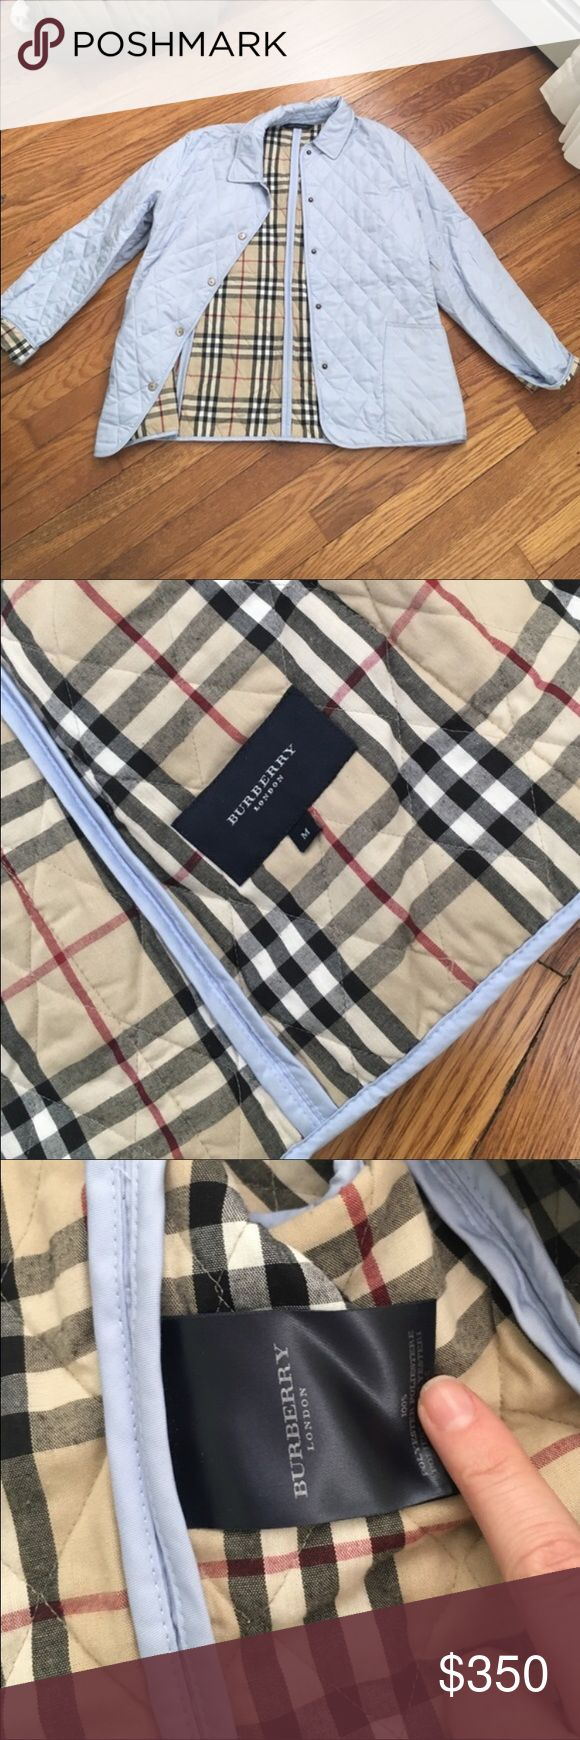 Burberry Quilted Light Blue Jacket 🎉one hour sale Authentic. Great condition. Size Medium. Burberry Jackets & Coats